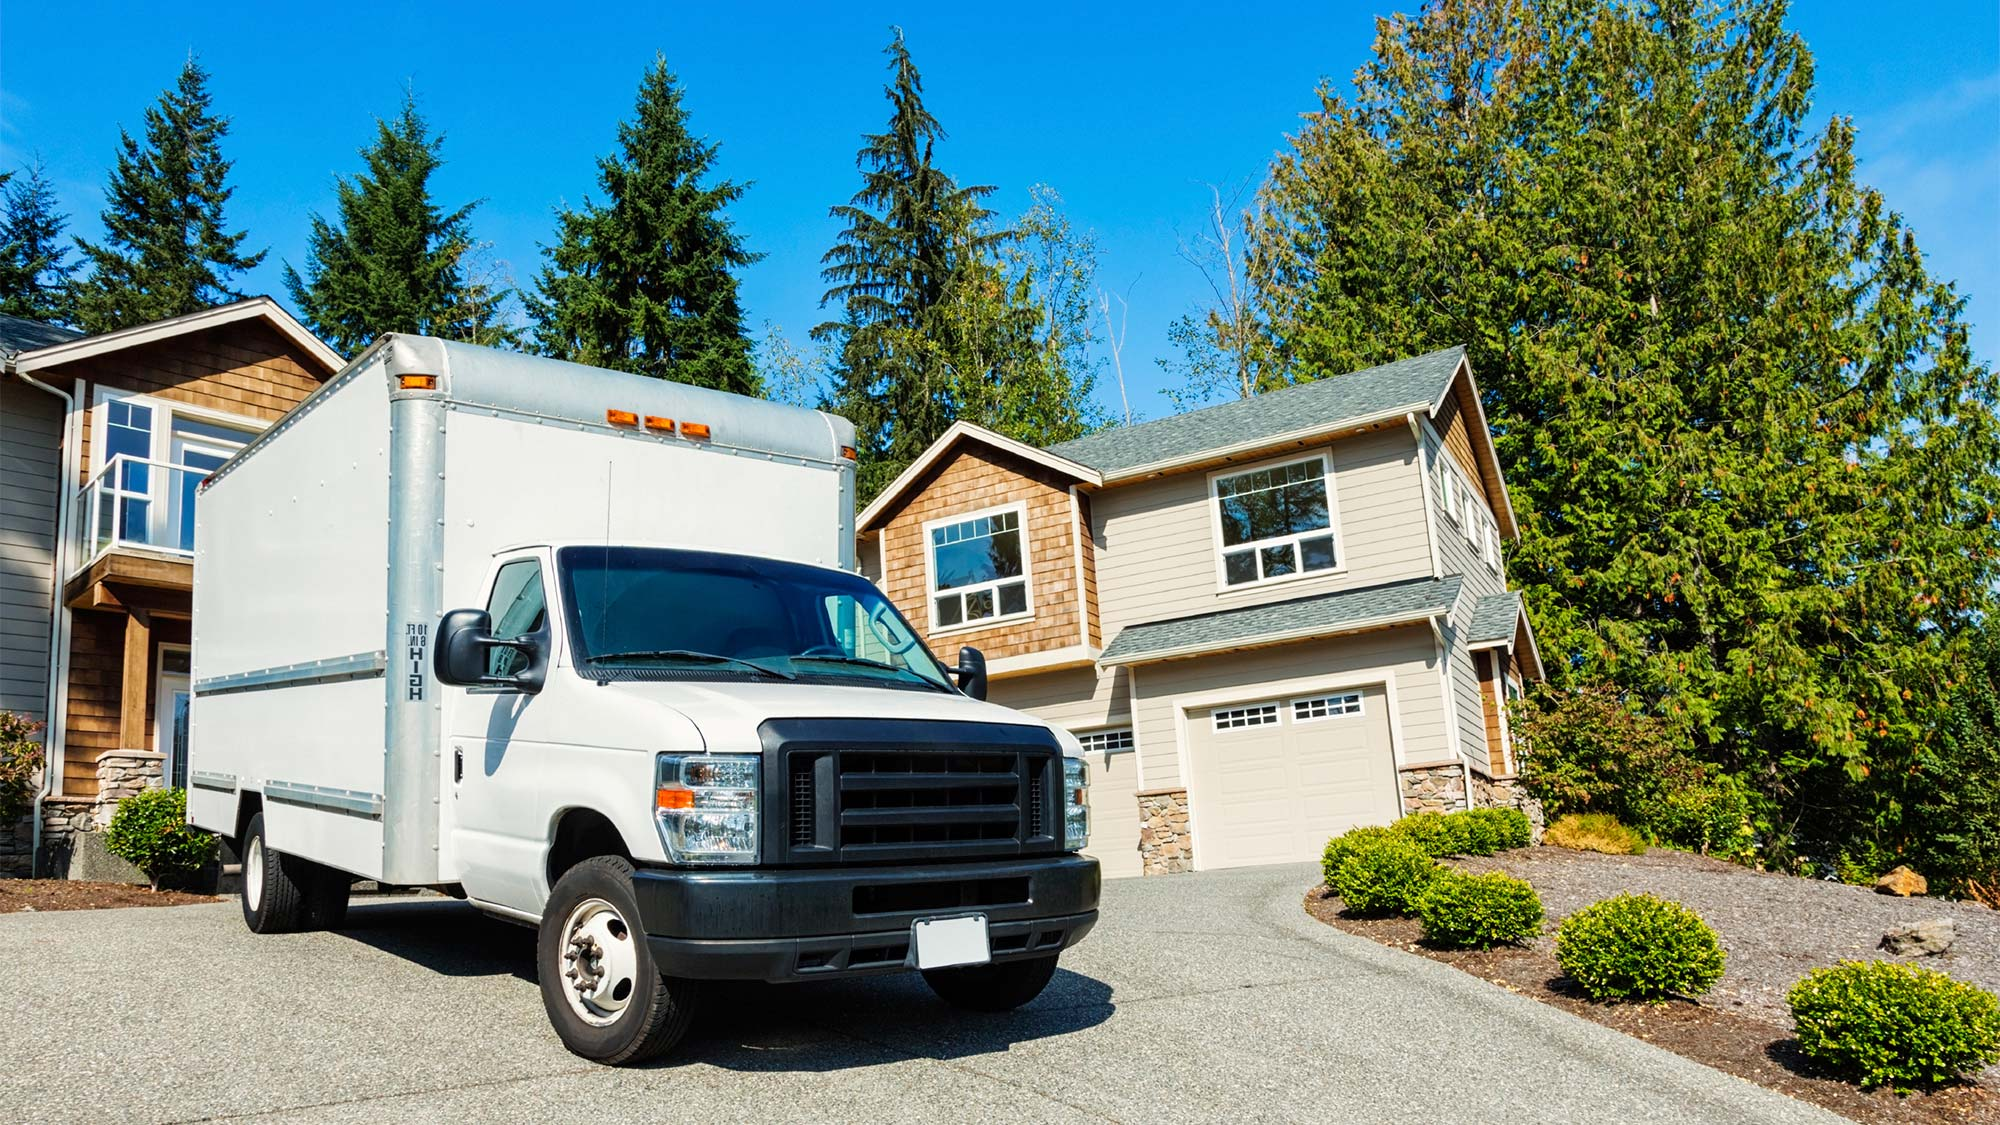 Rent a moving truck with unlimited mileage